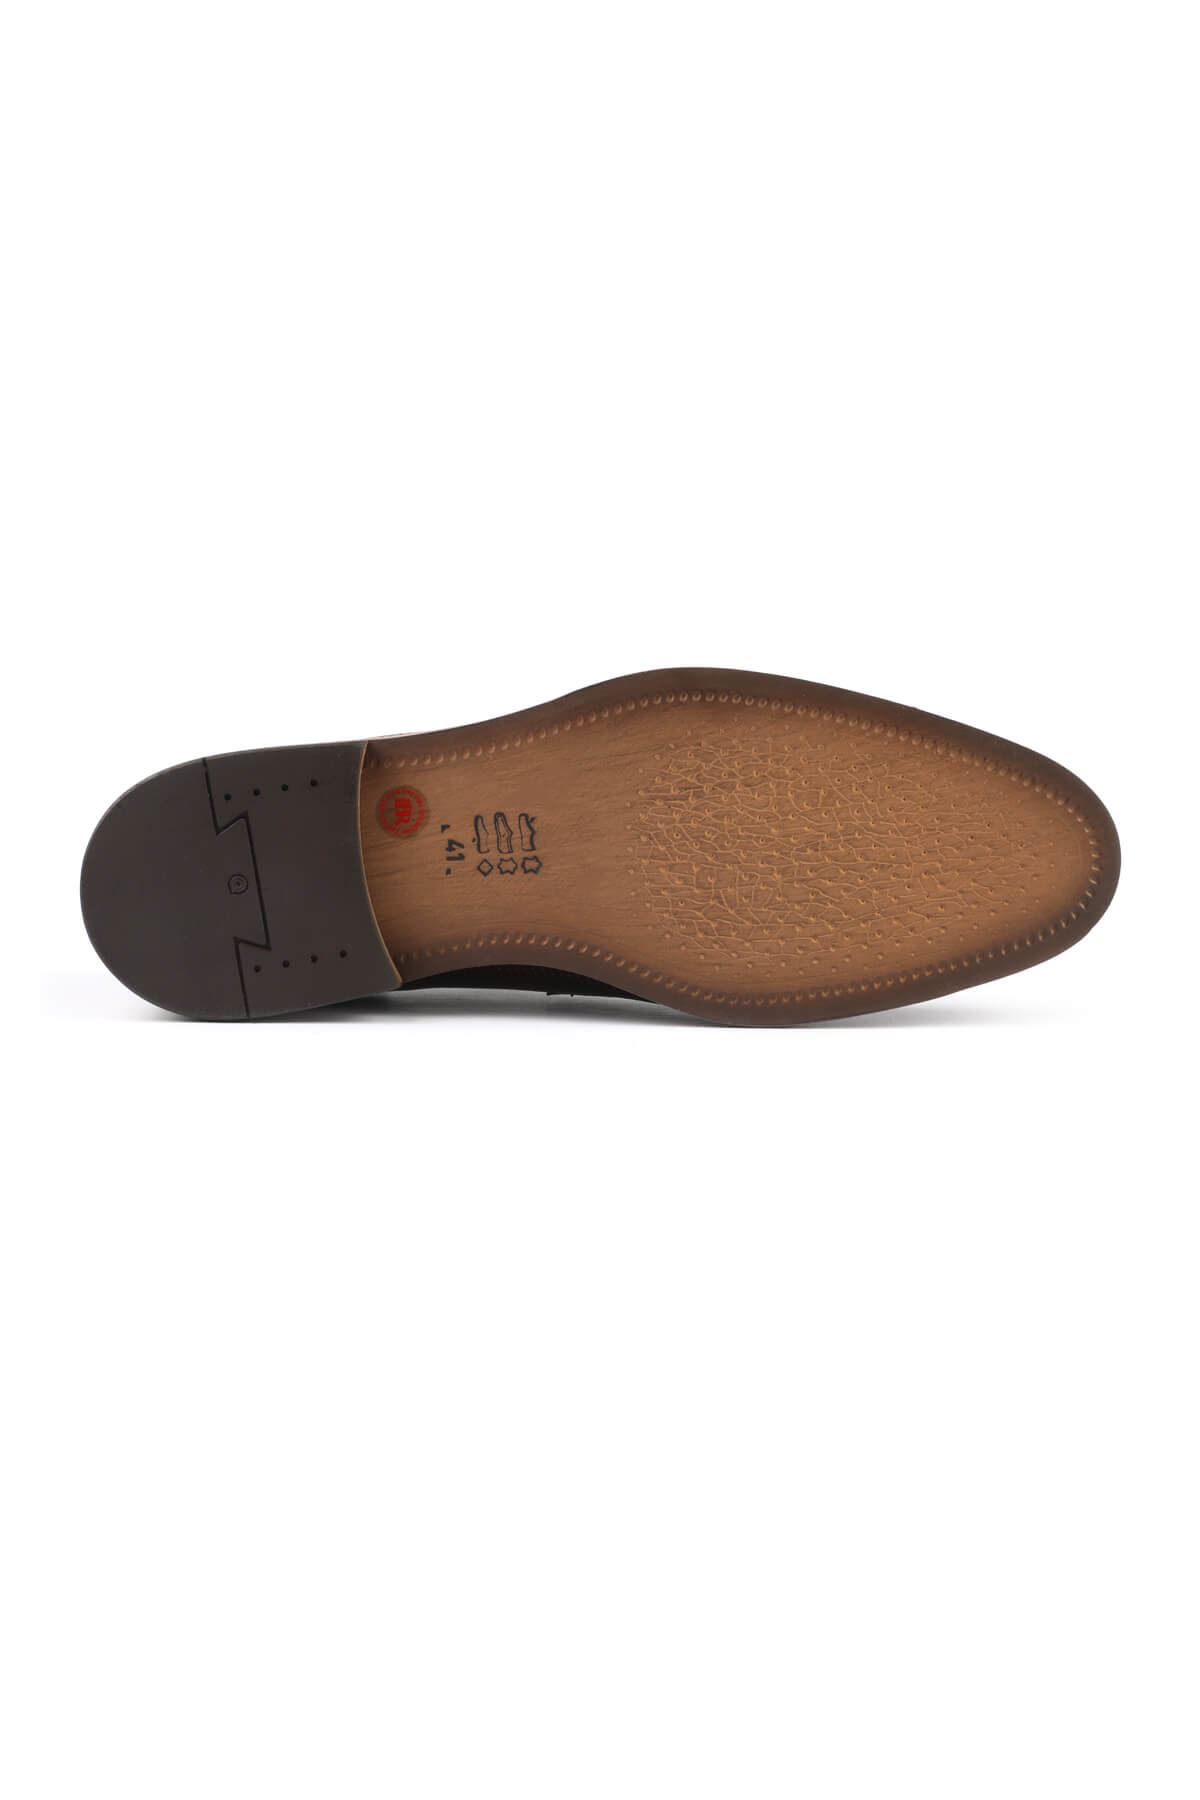 Libero 2943 Brown Loafer Shoes